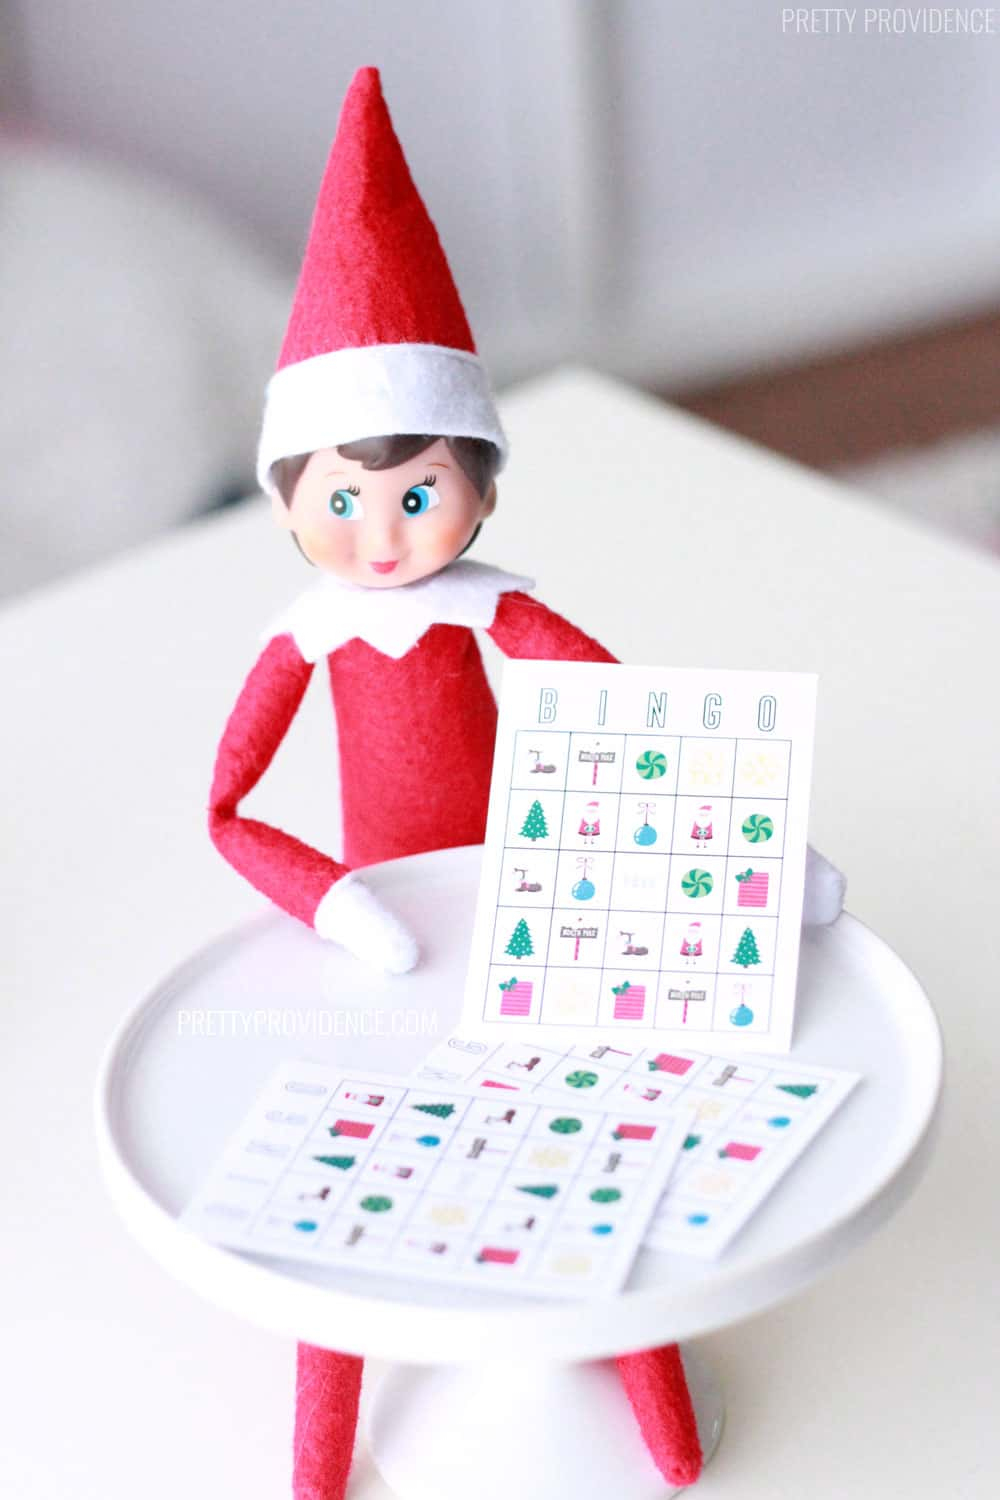 Elf On The Shelf Bingo Printable - Pretty Providence